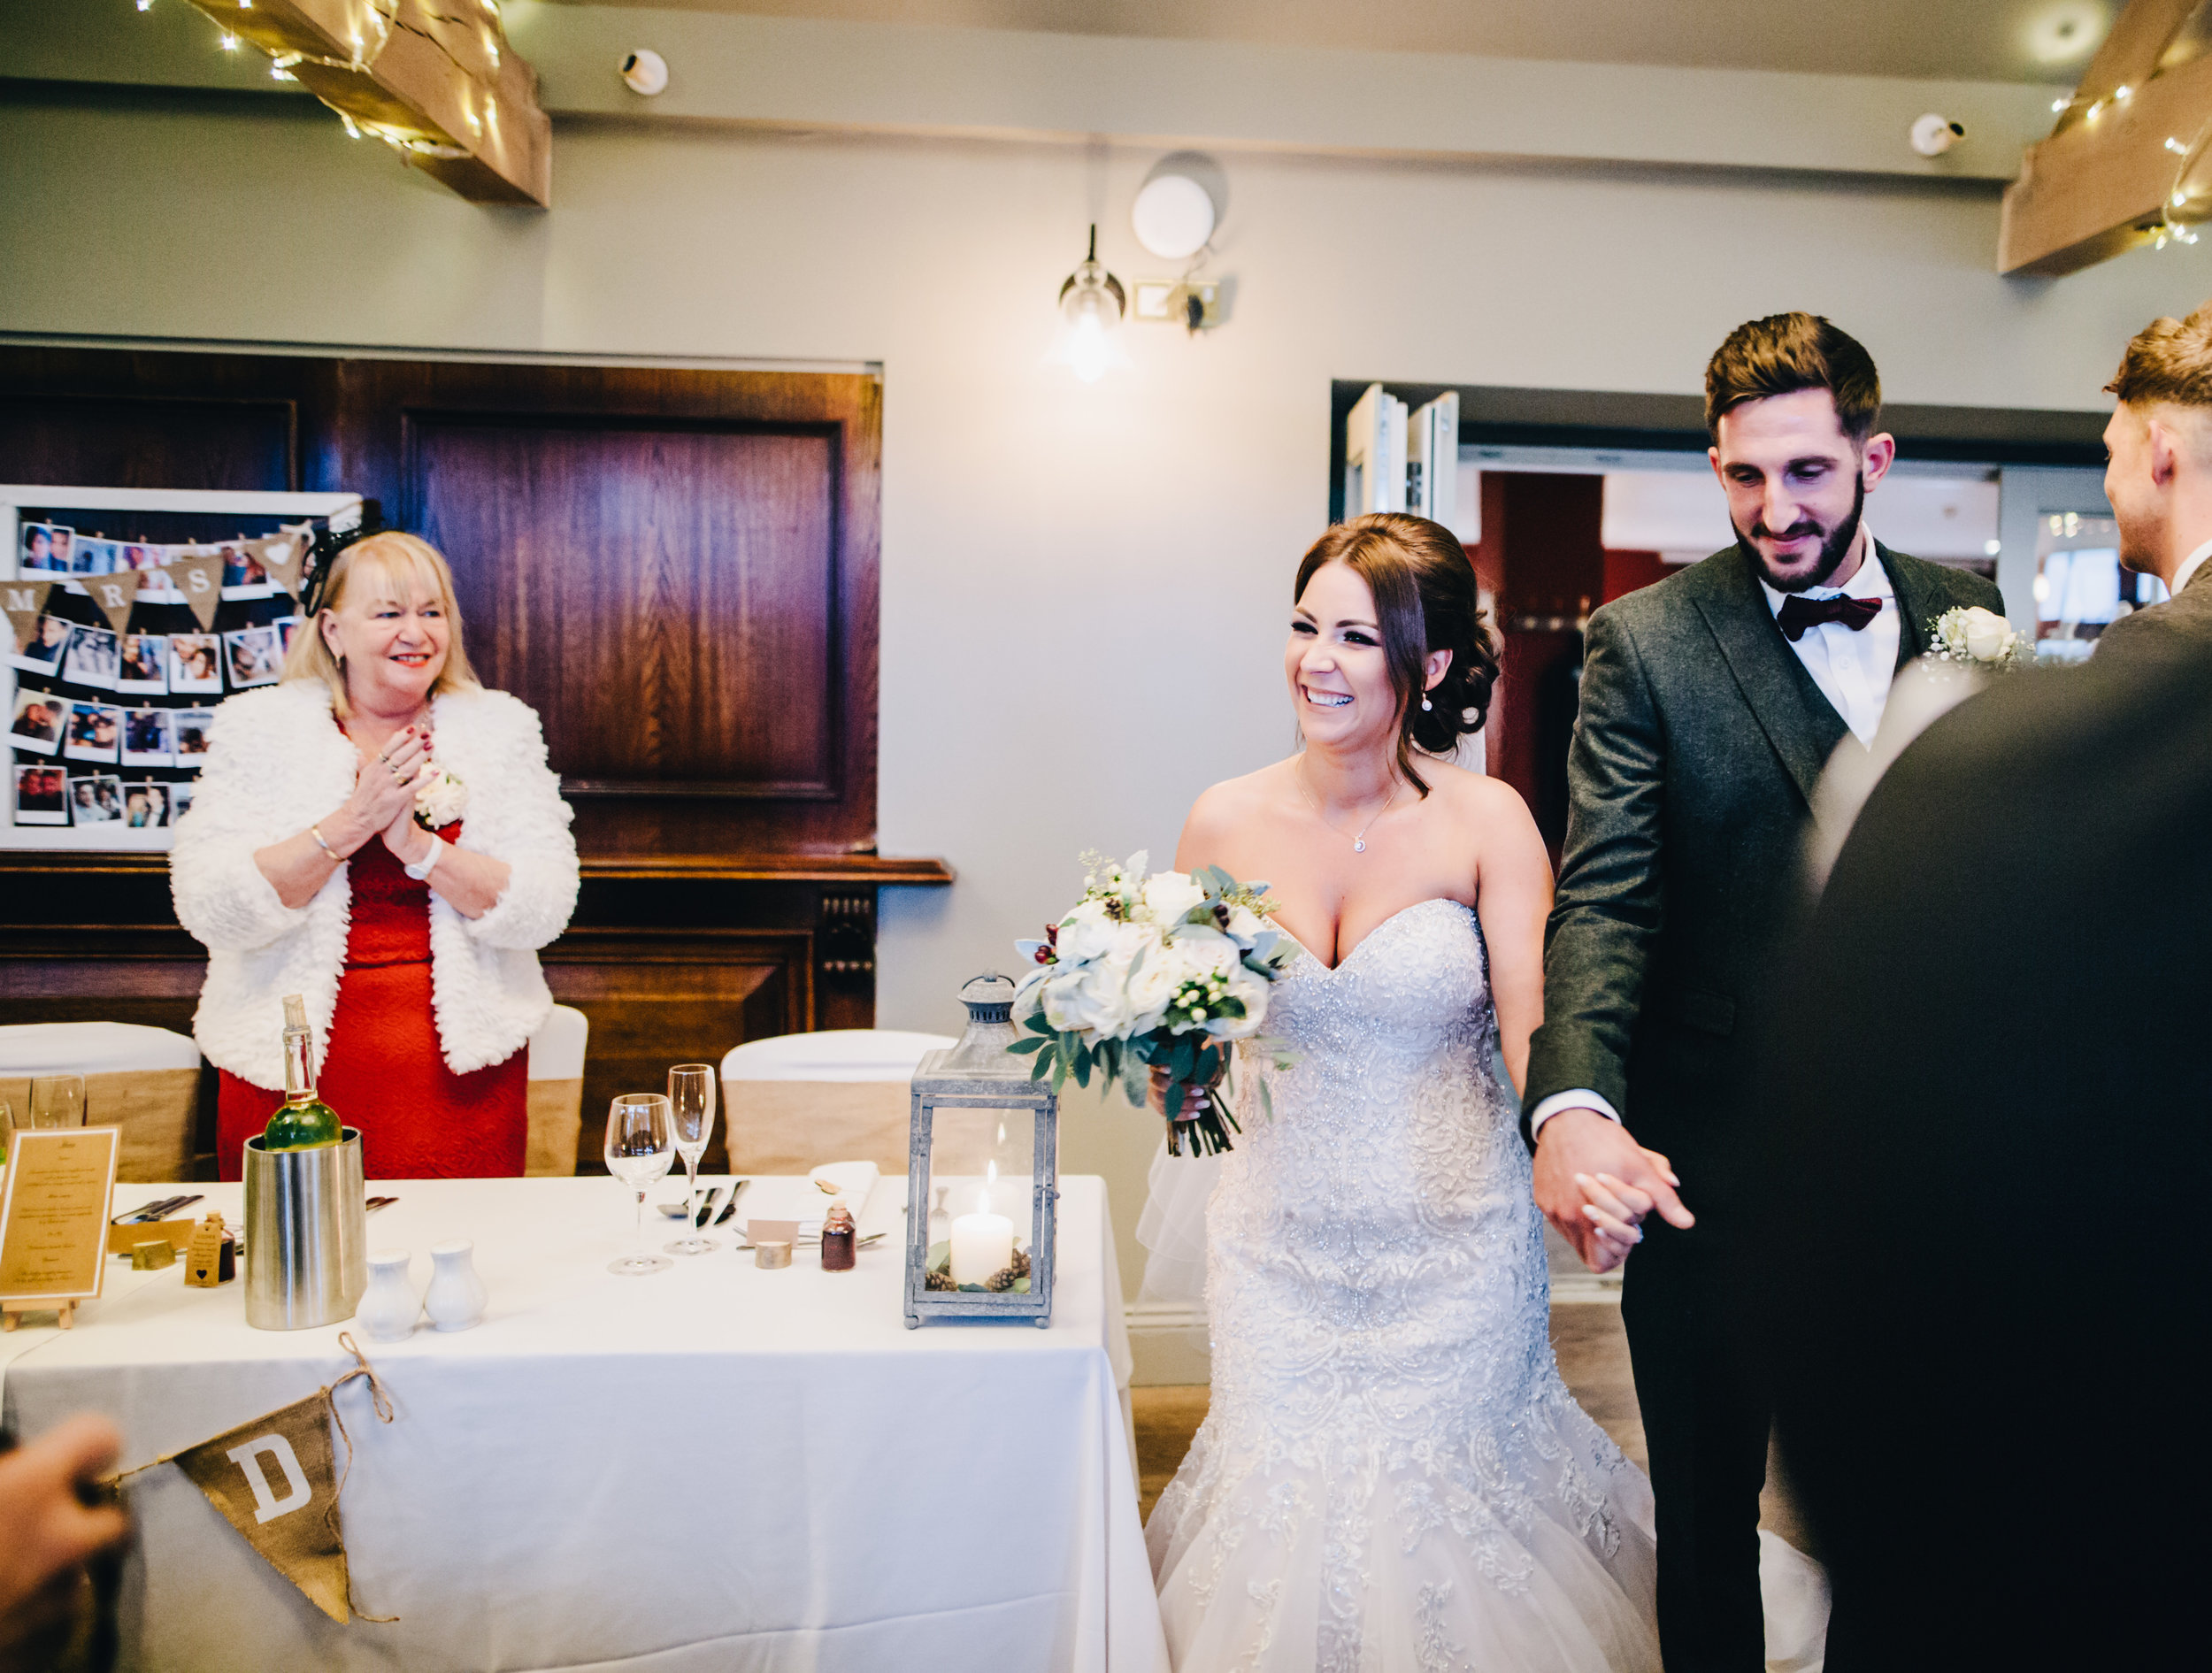 bride and groom enter the room - natural wedding photography